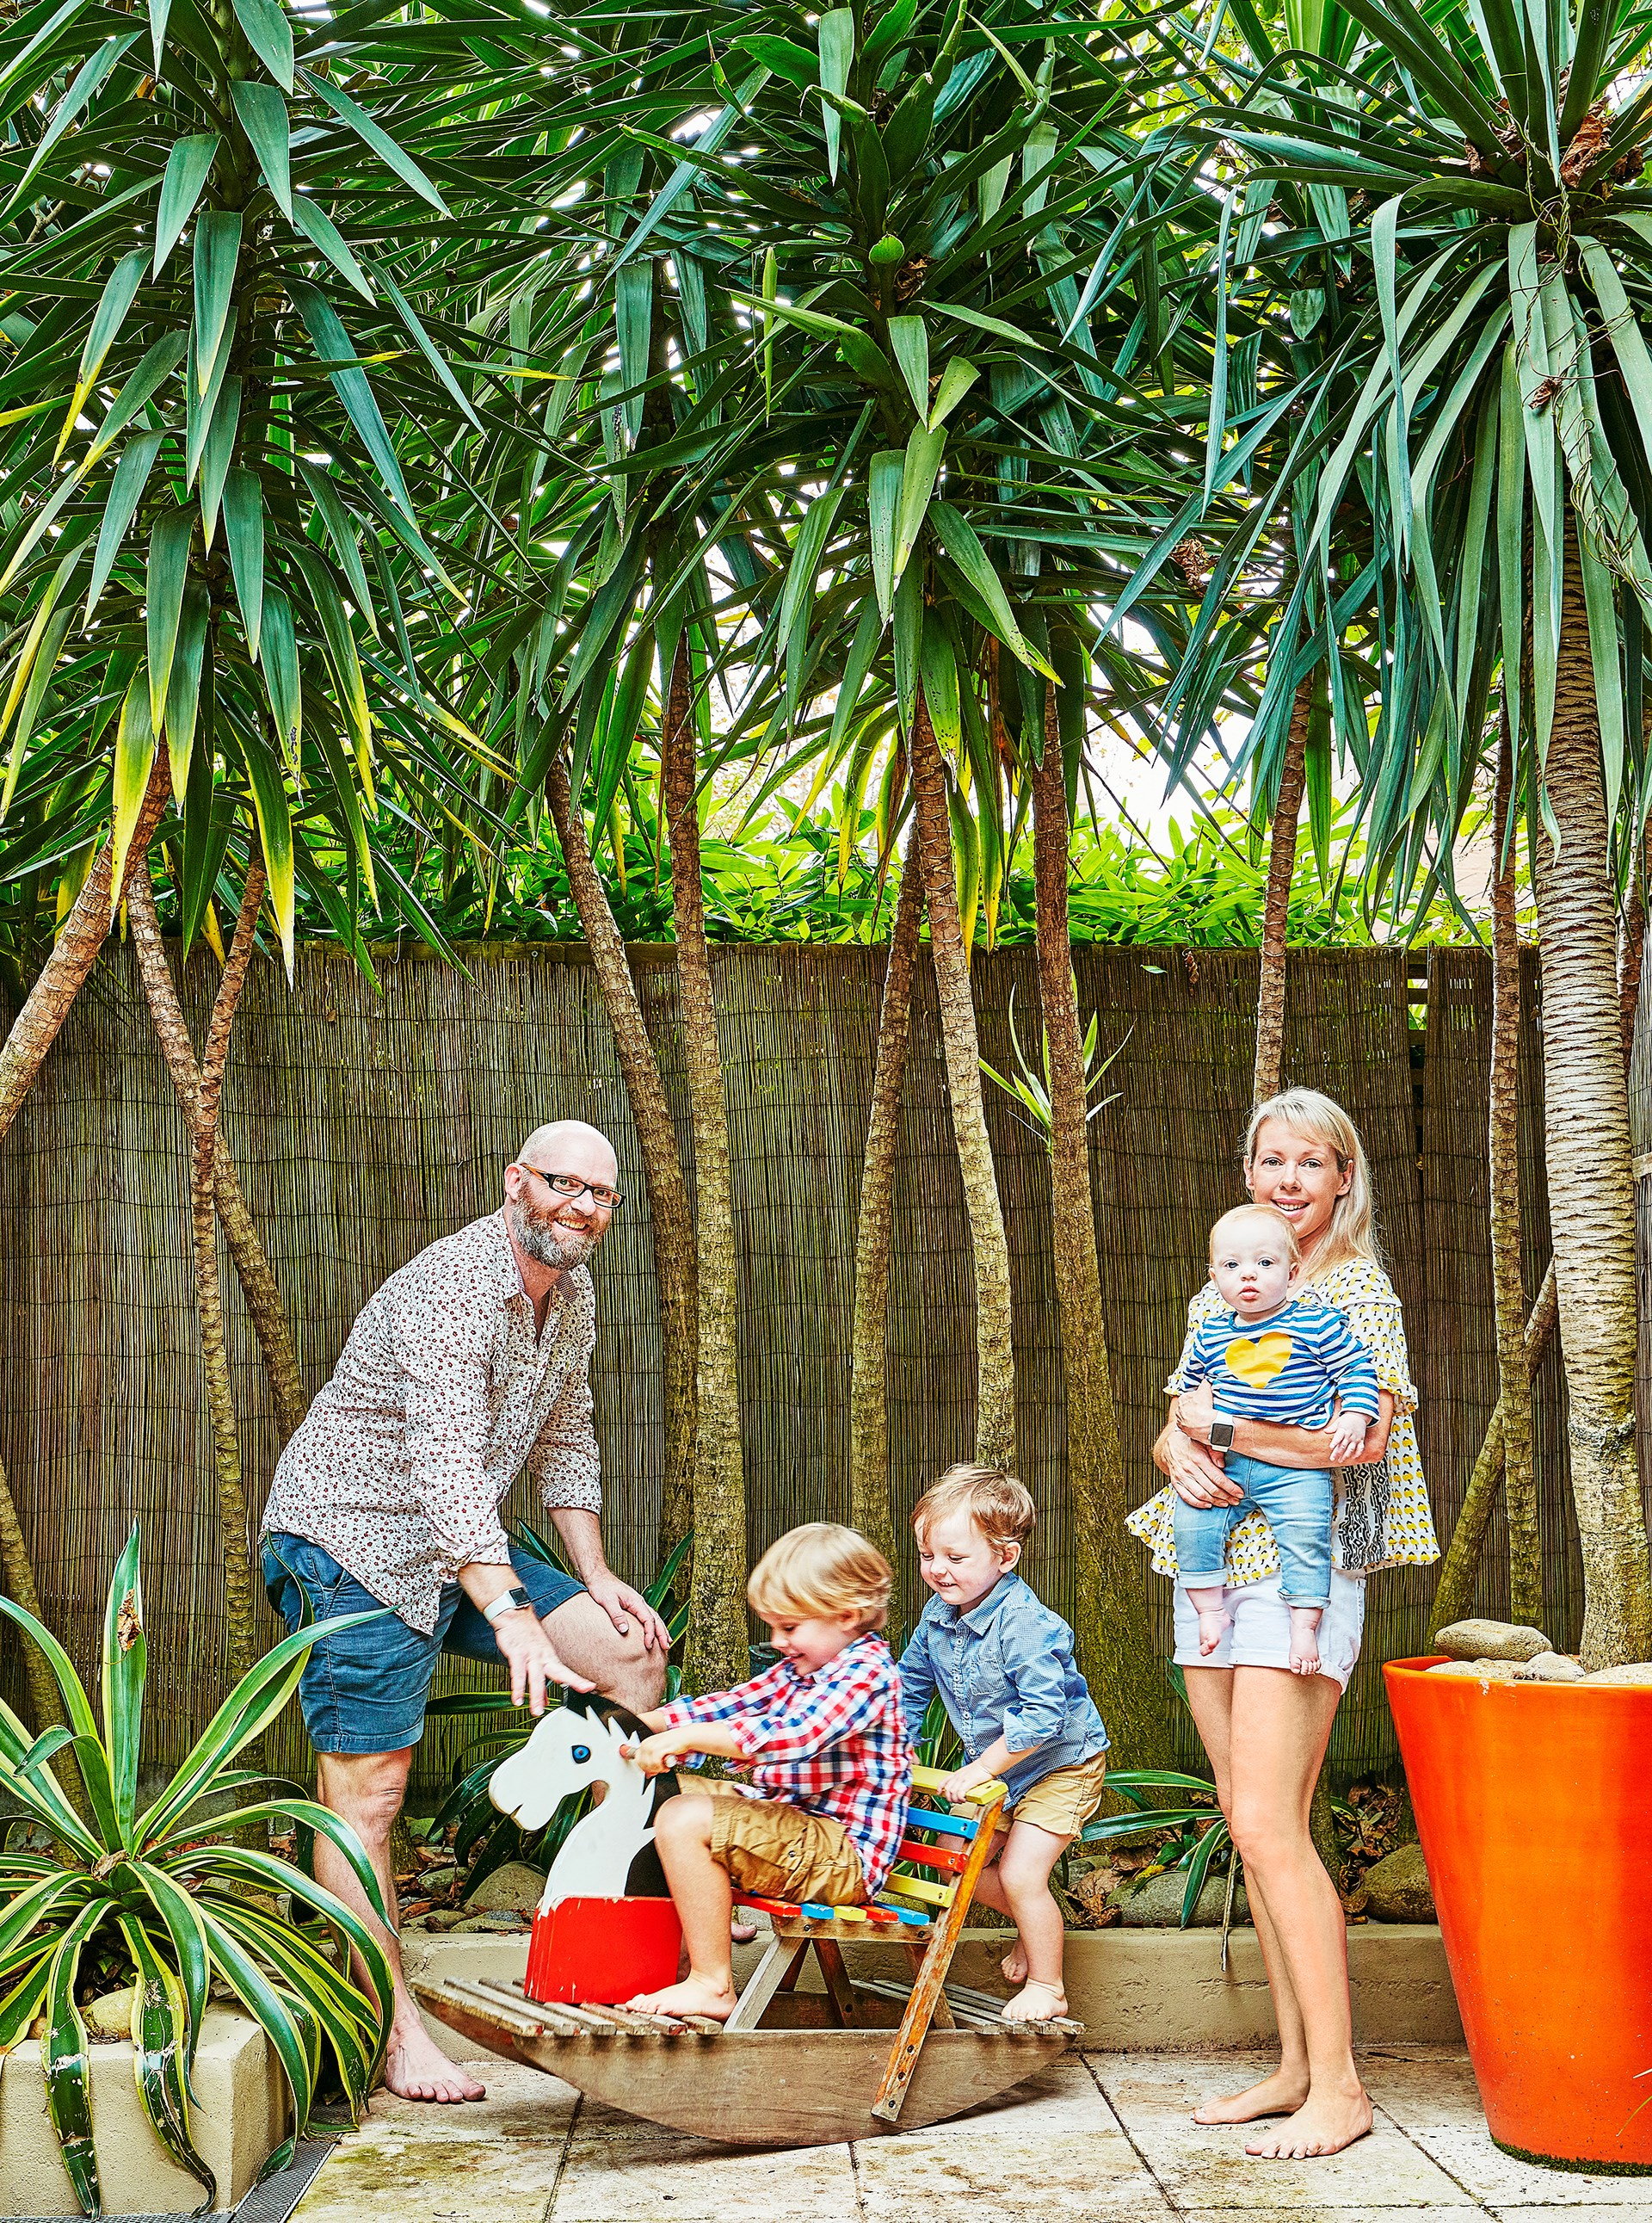 "**Use the same plant en masse** – choose one plant variety that will thrive in your garden and apply generously for a uniform look. [Take a tour of this playful home bursting with colour](http://www.homestolove.com.au/a-playful-home-bursting-with-colour-3894|target=""_blank""). *Photo: Scott Hawkins*"